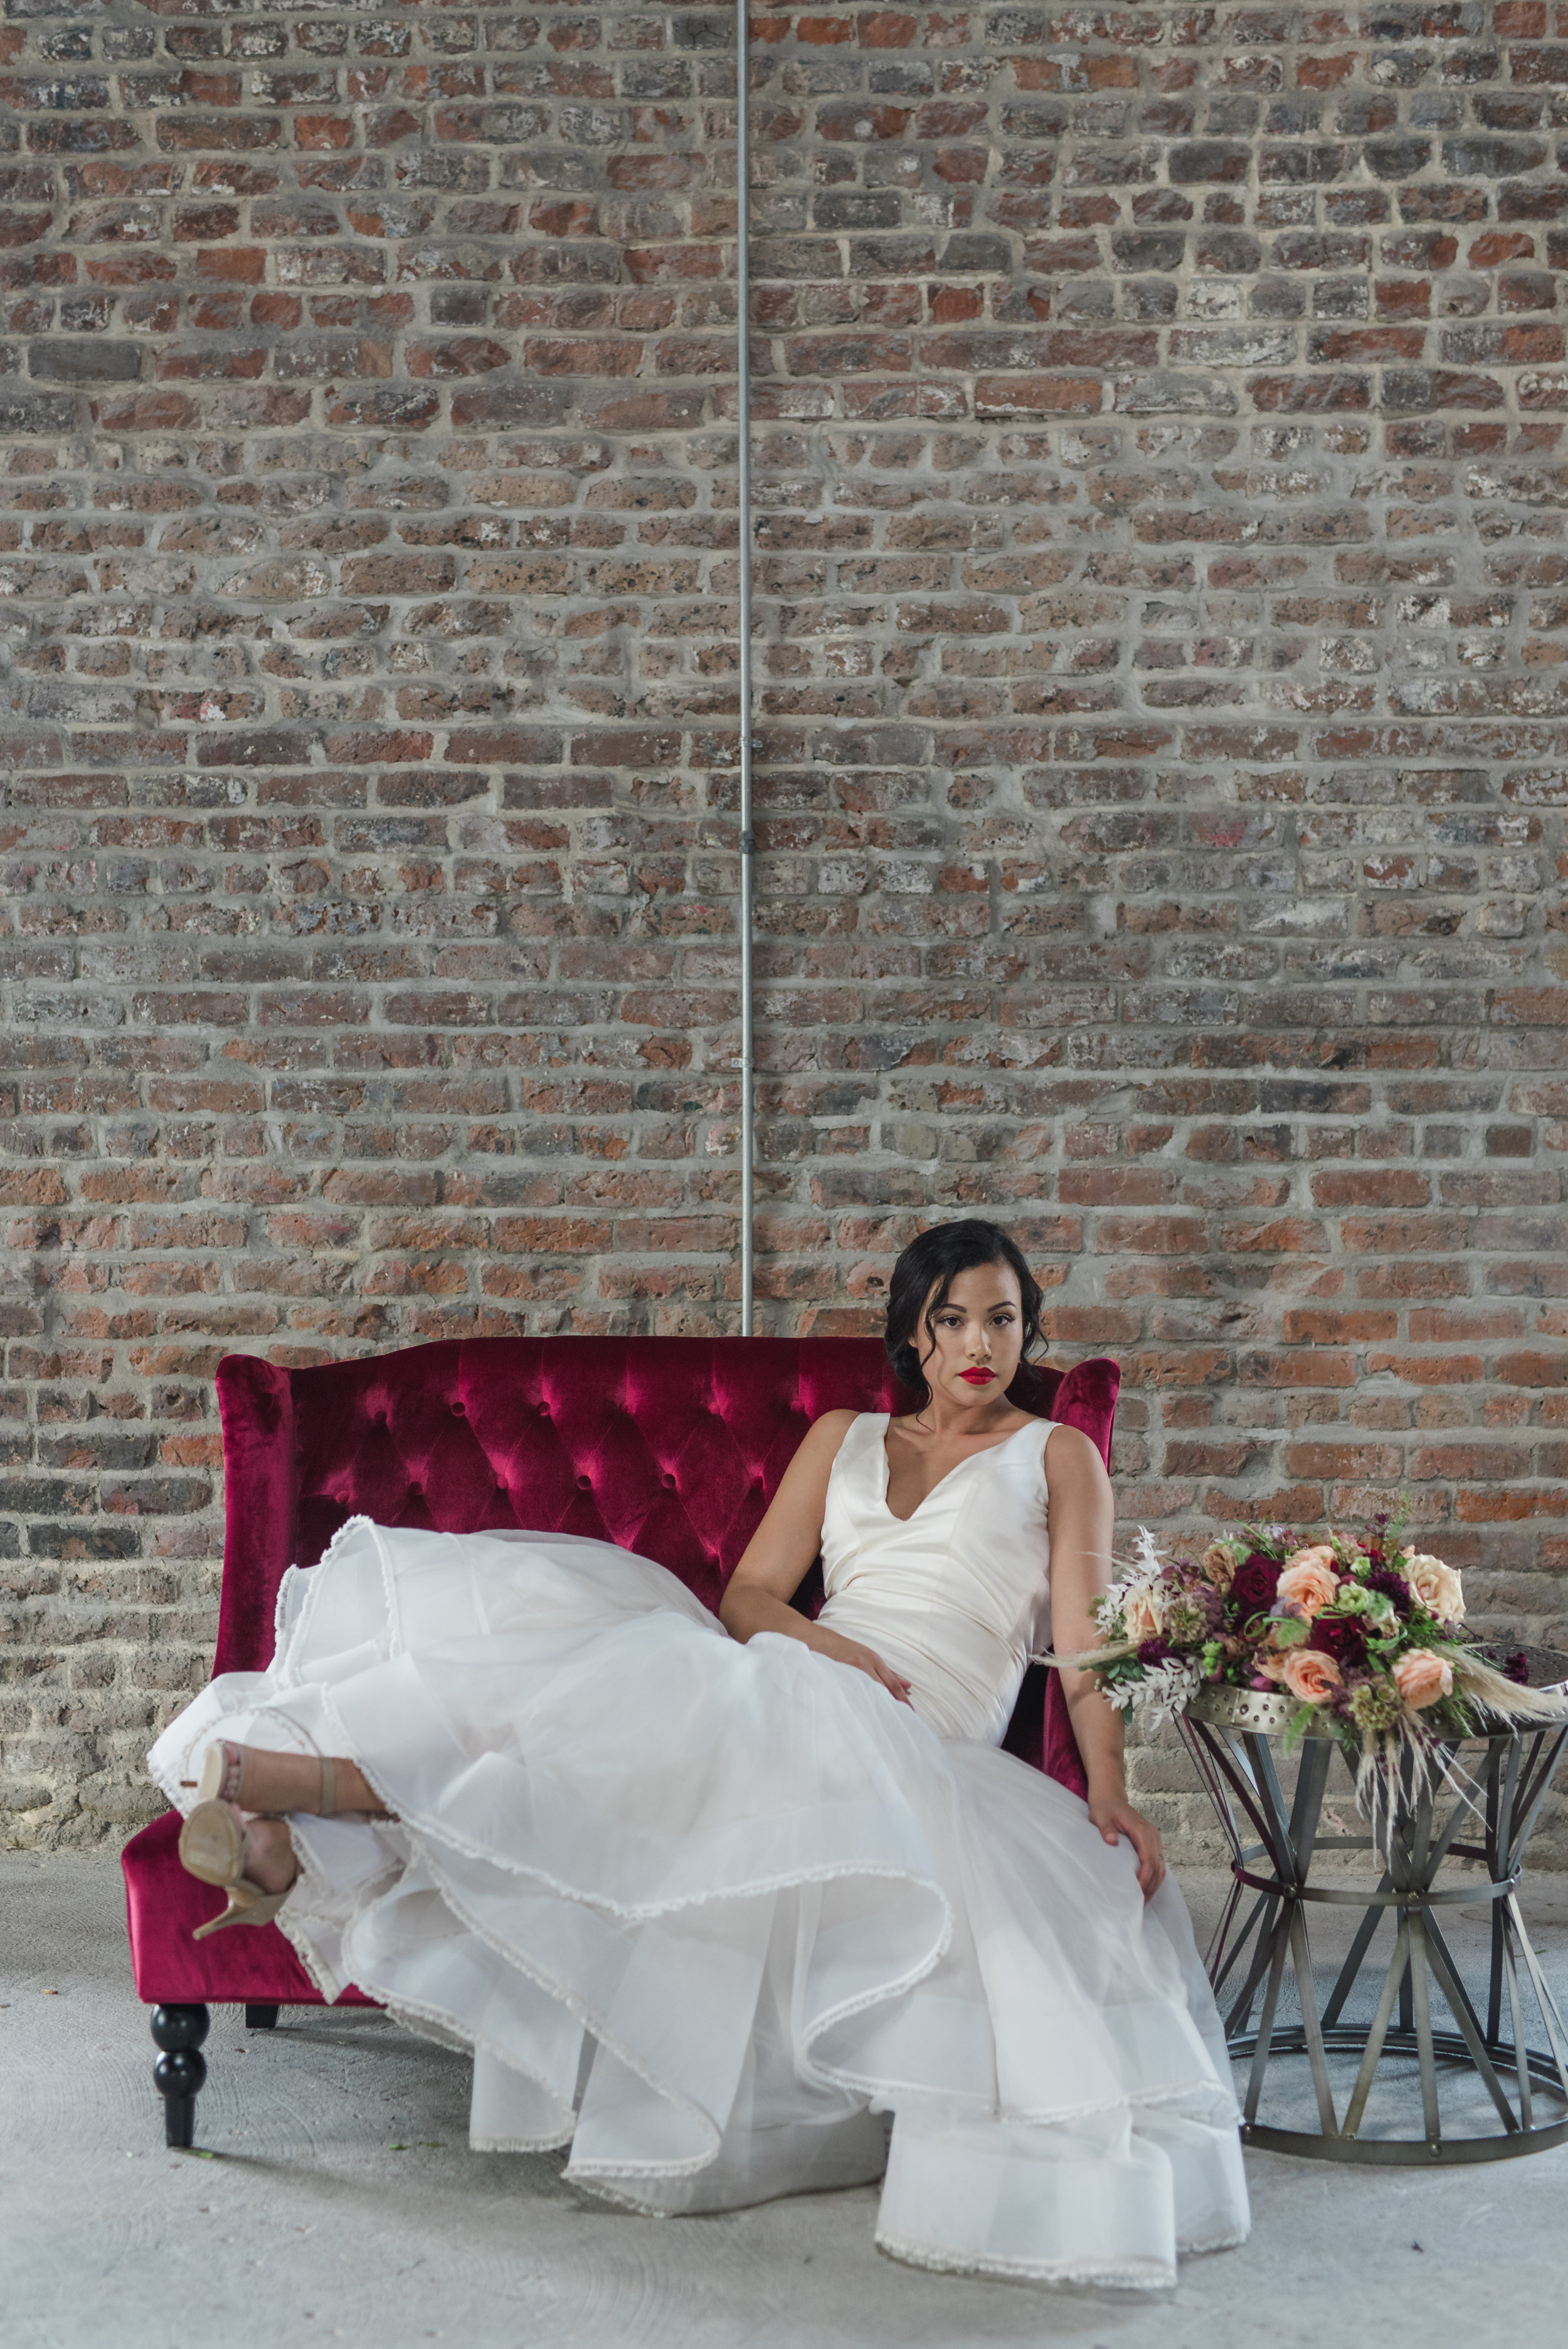 New Orleans all-inclusive wedding venue package